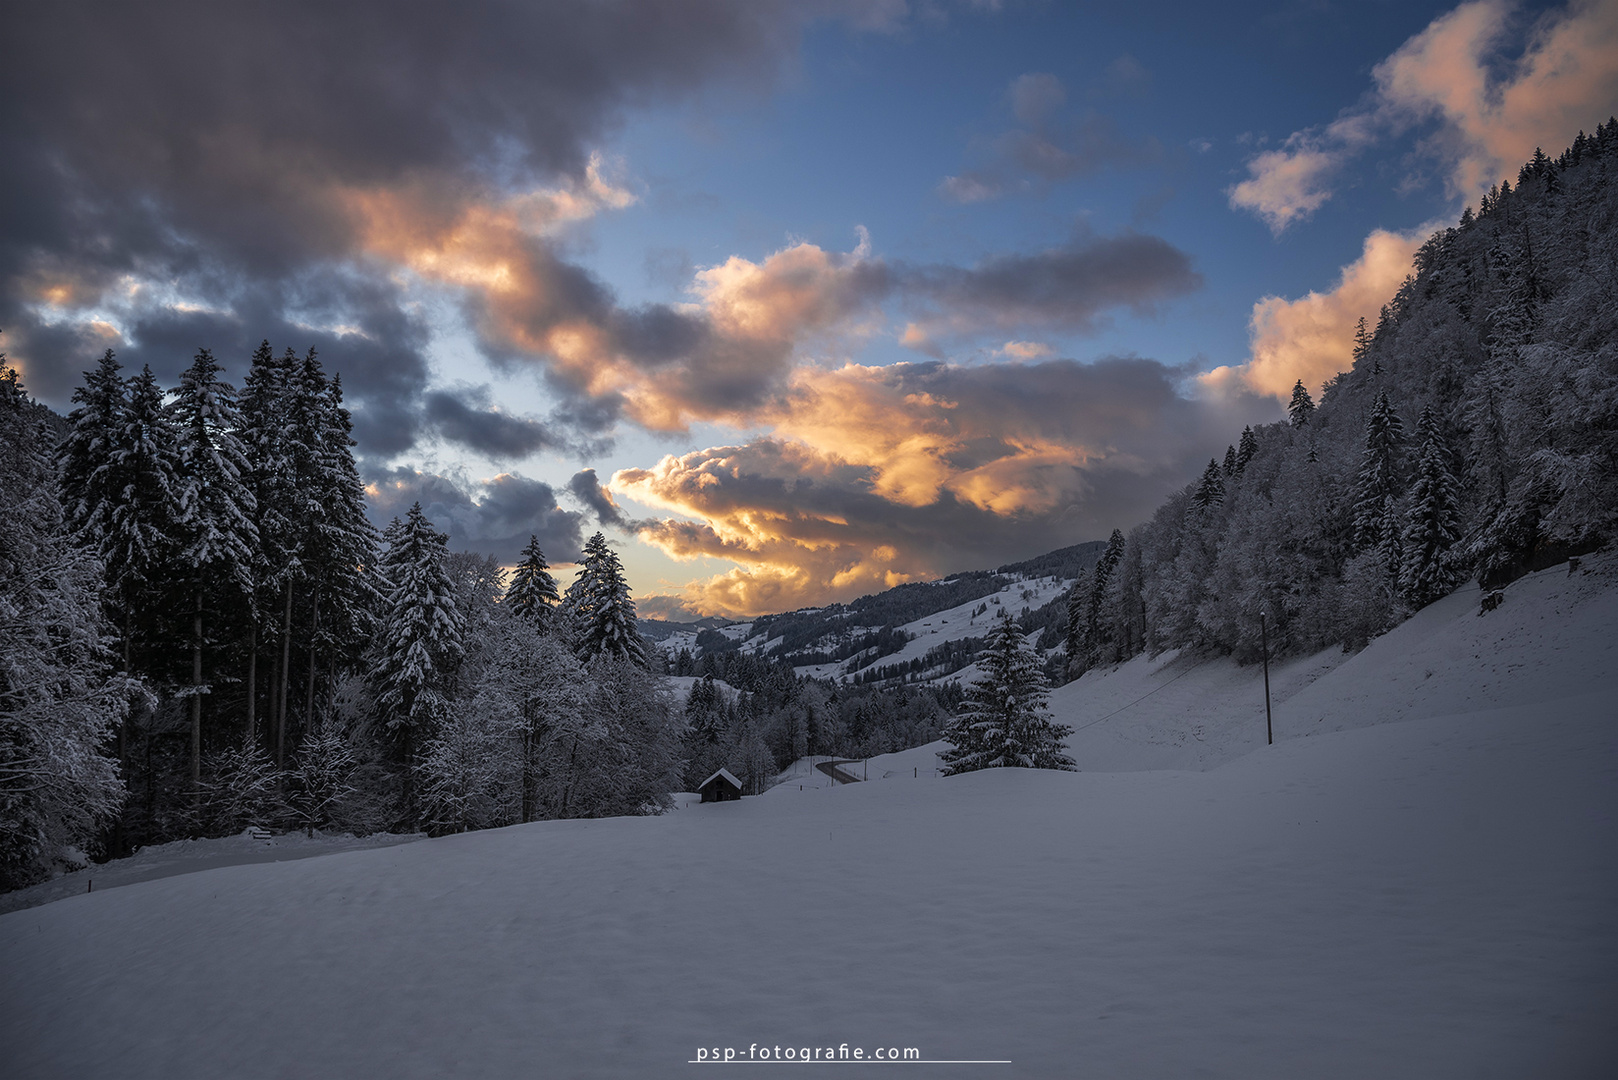 ... an evening in the snow ...